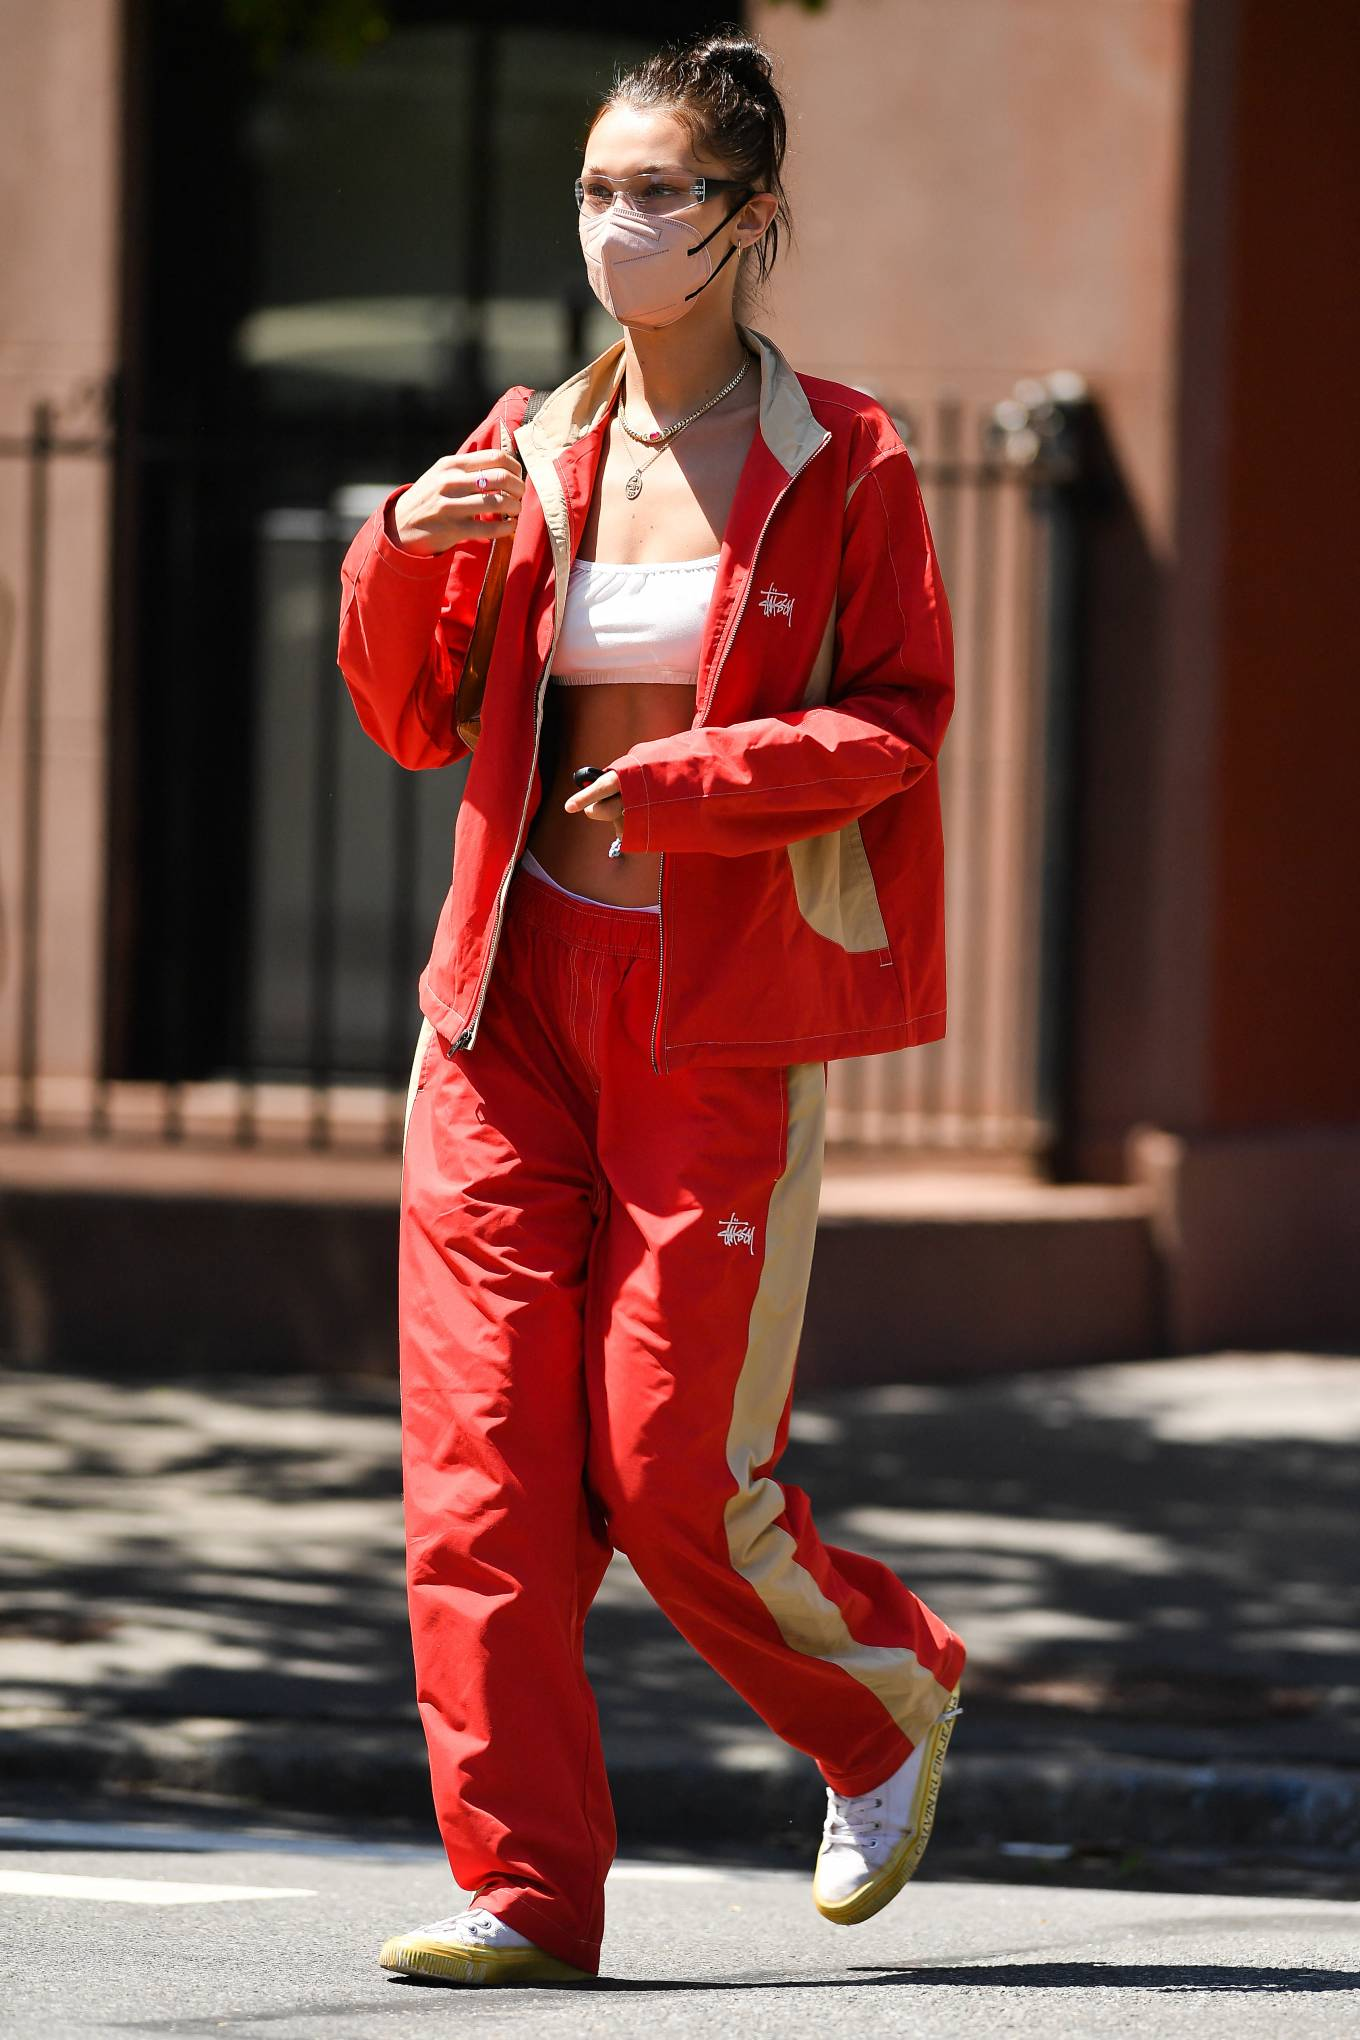 Bella Hadid rocking a relaxed fit red open front nylon jacket with full sleeves, stand-up collar and side pockets